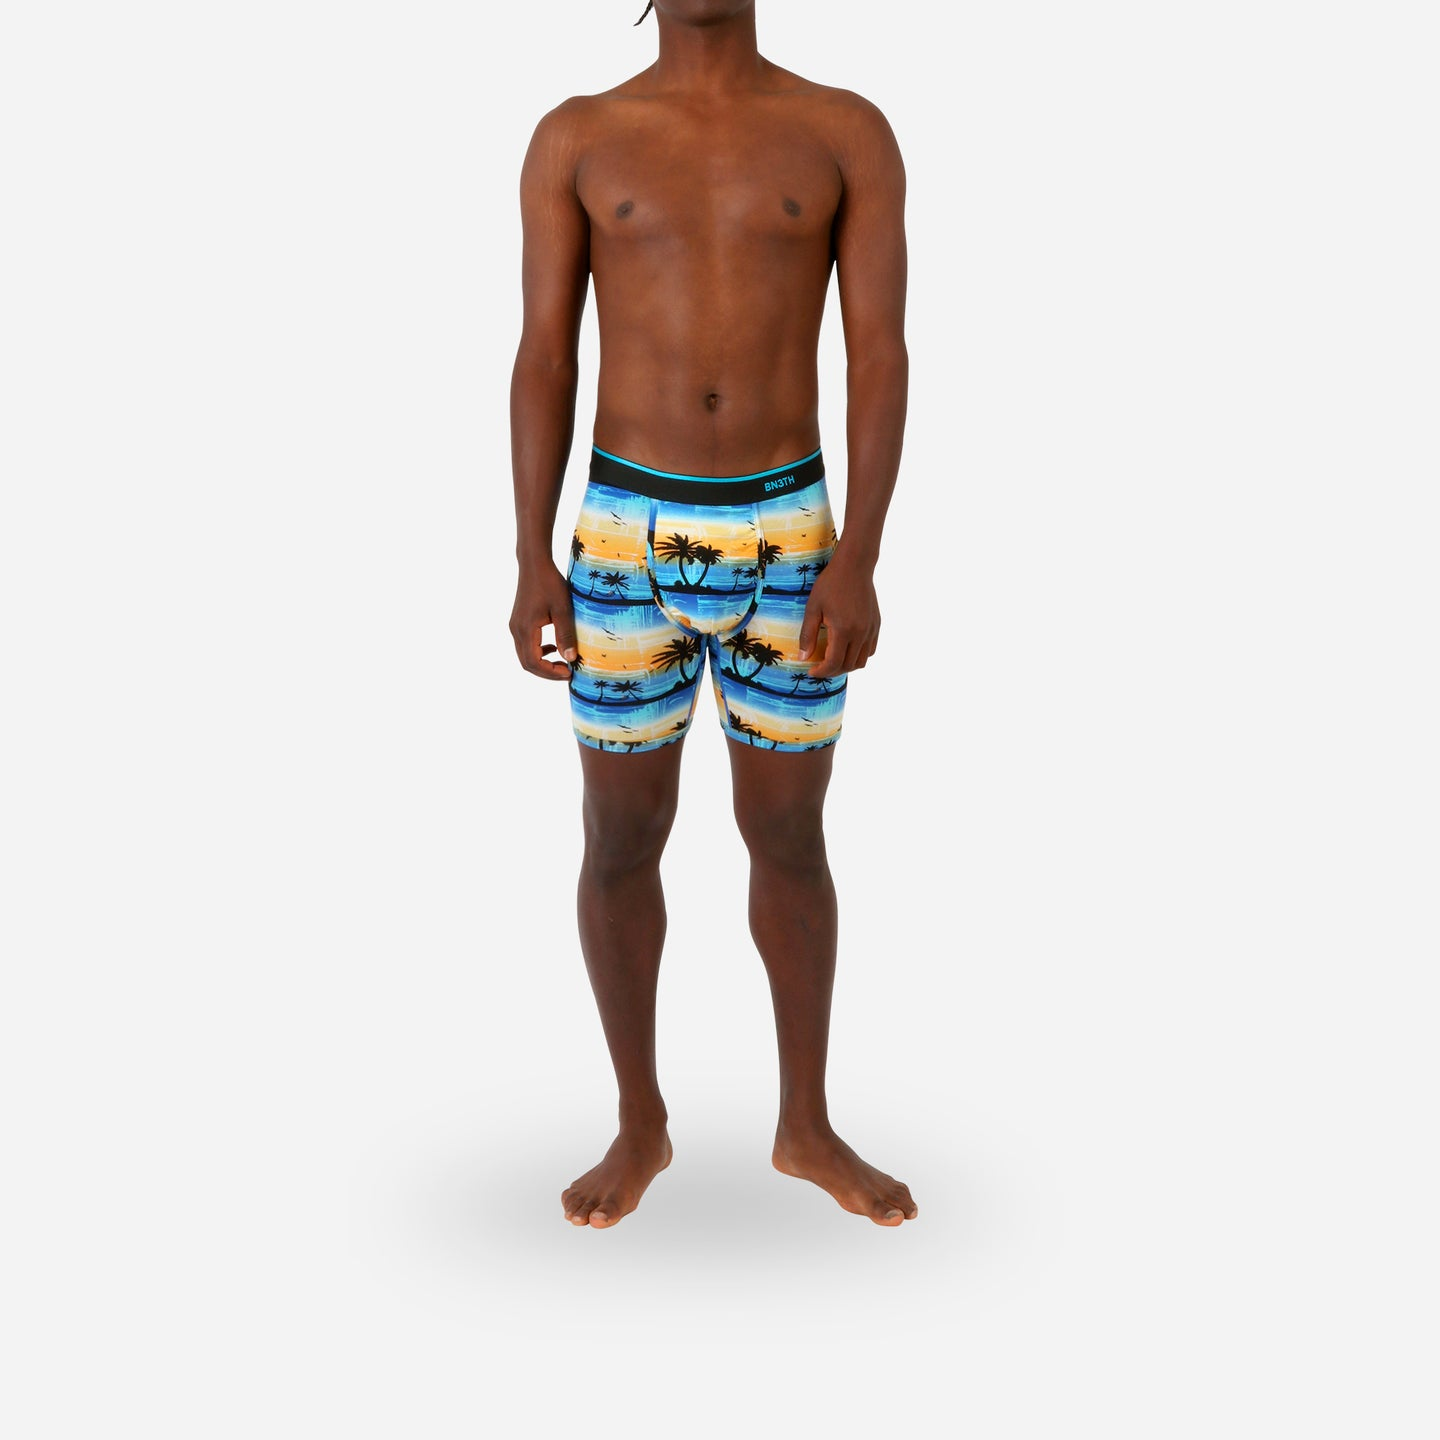 CLASSIC BOXER BRIEF WITH FLY: HORIZON PLAYA